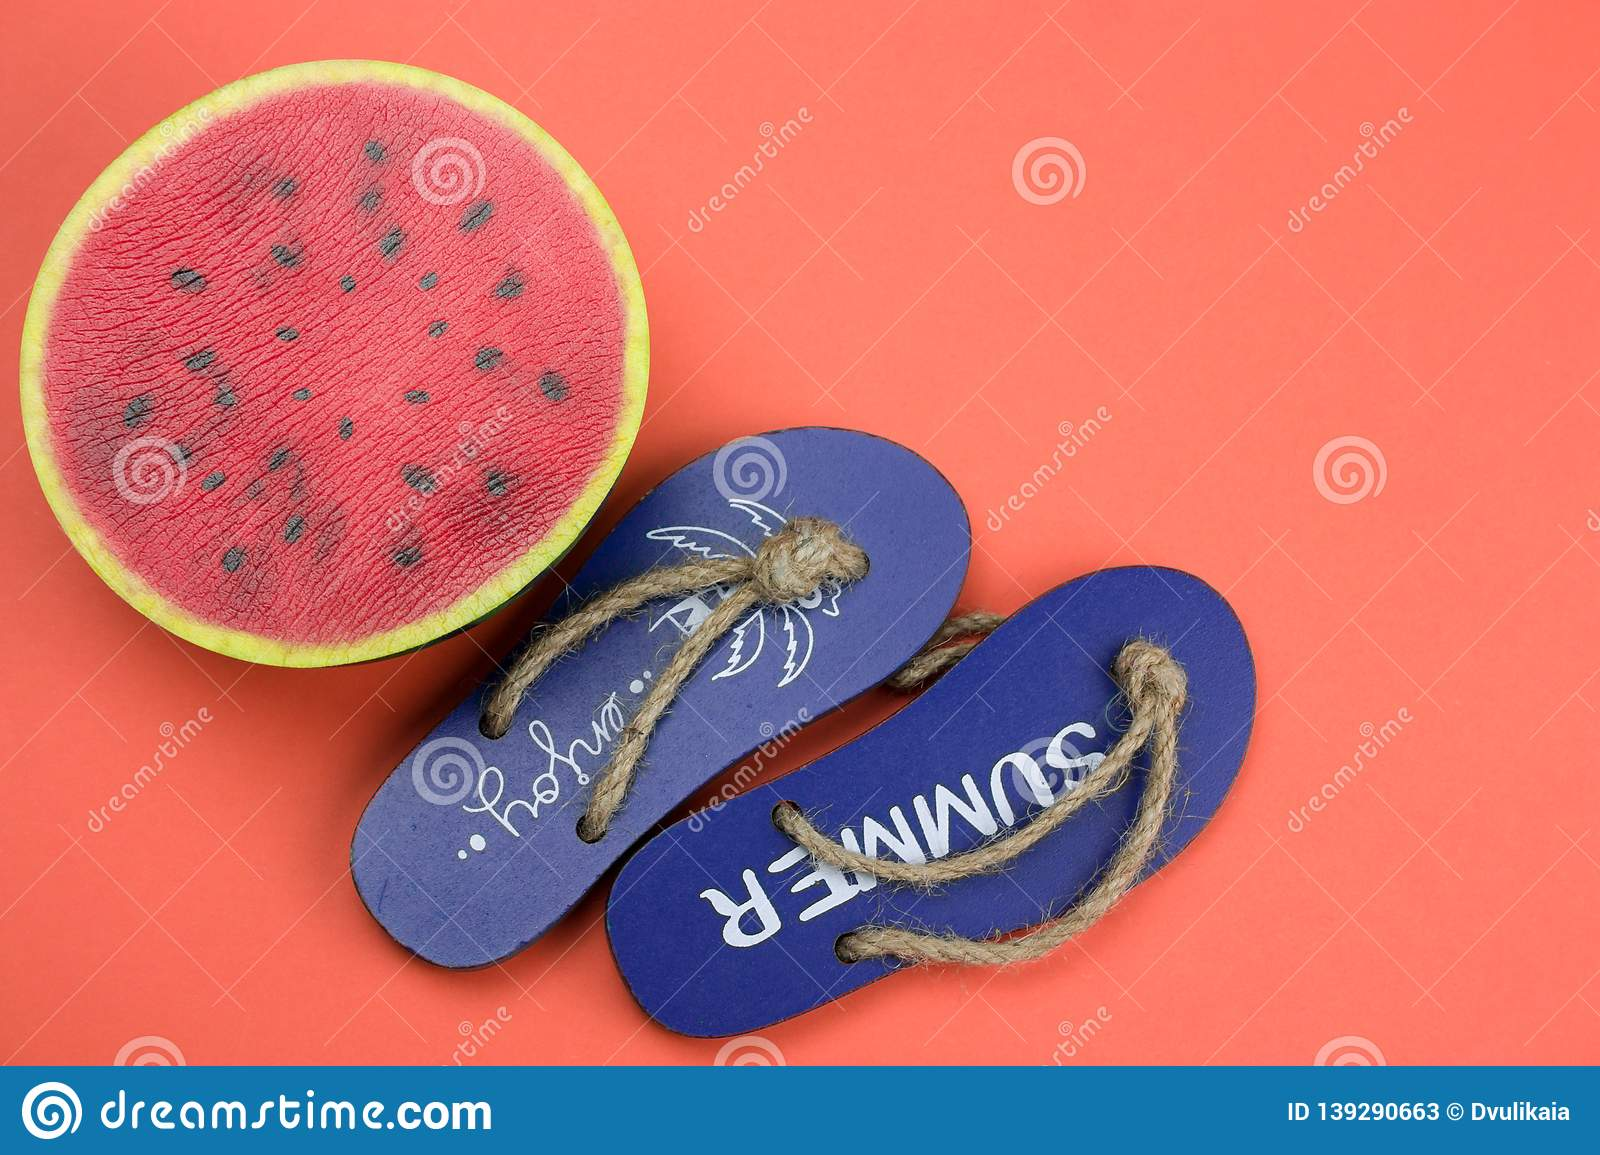 9990b2bbbb30 decorative wooden flip flops and squishy toy watermelon on a coral  background copy space